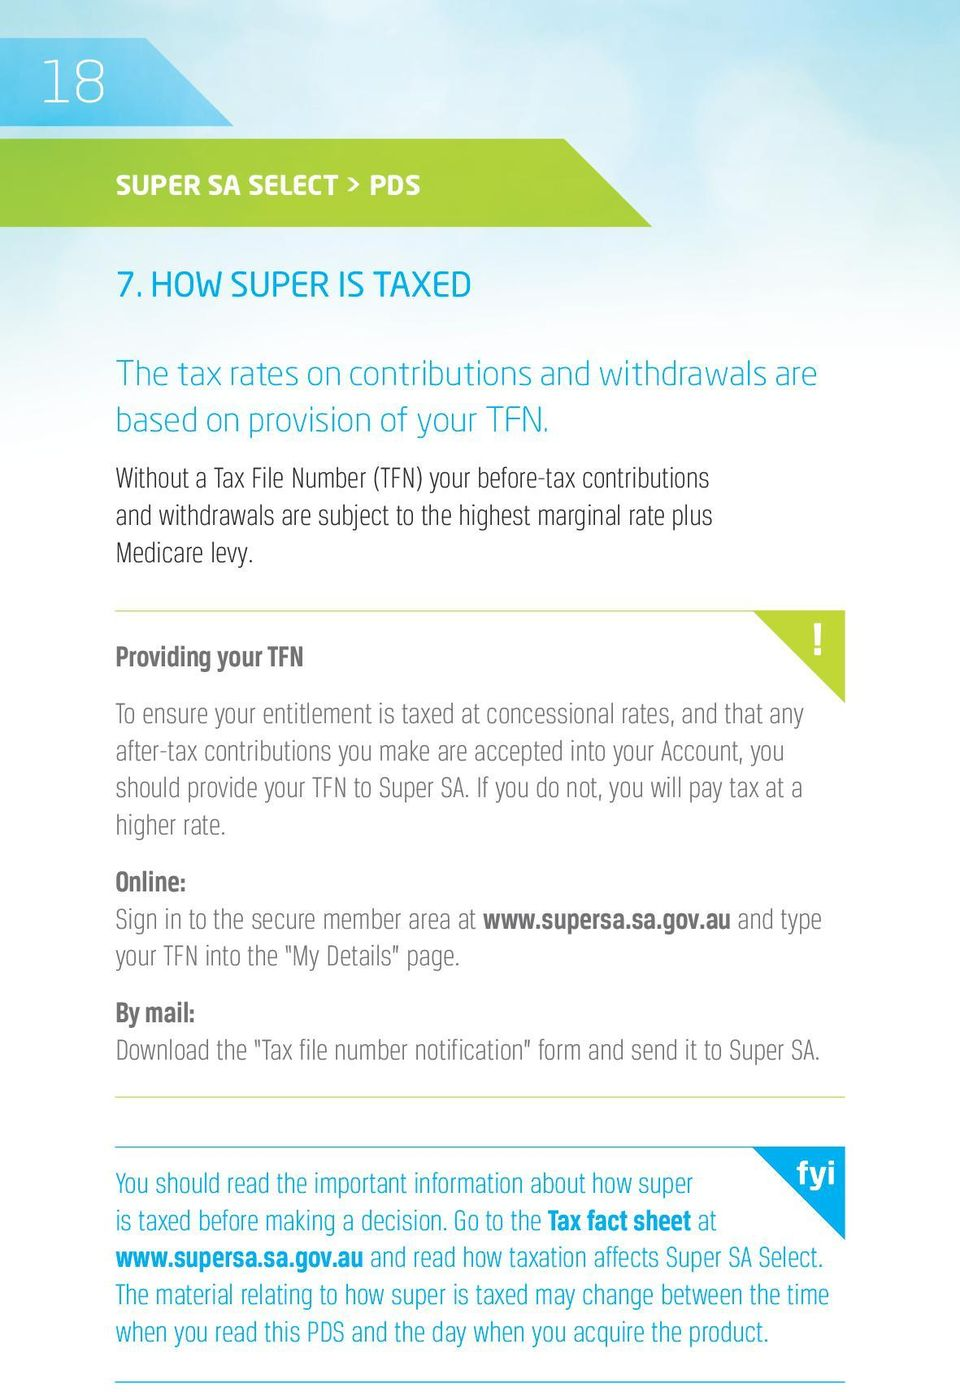 Providing your TFN To ensure your entitlement is taxed at concessional rates, and that any after-tax contributions you make are accepted into your Account, you should provide your TFN to Super SA.